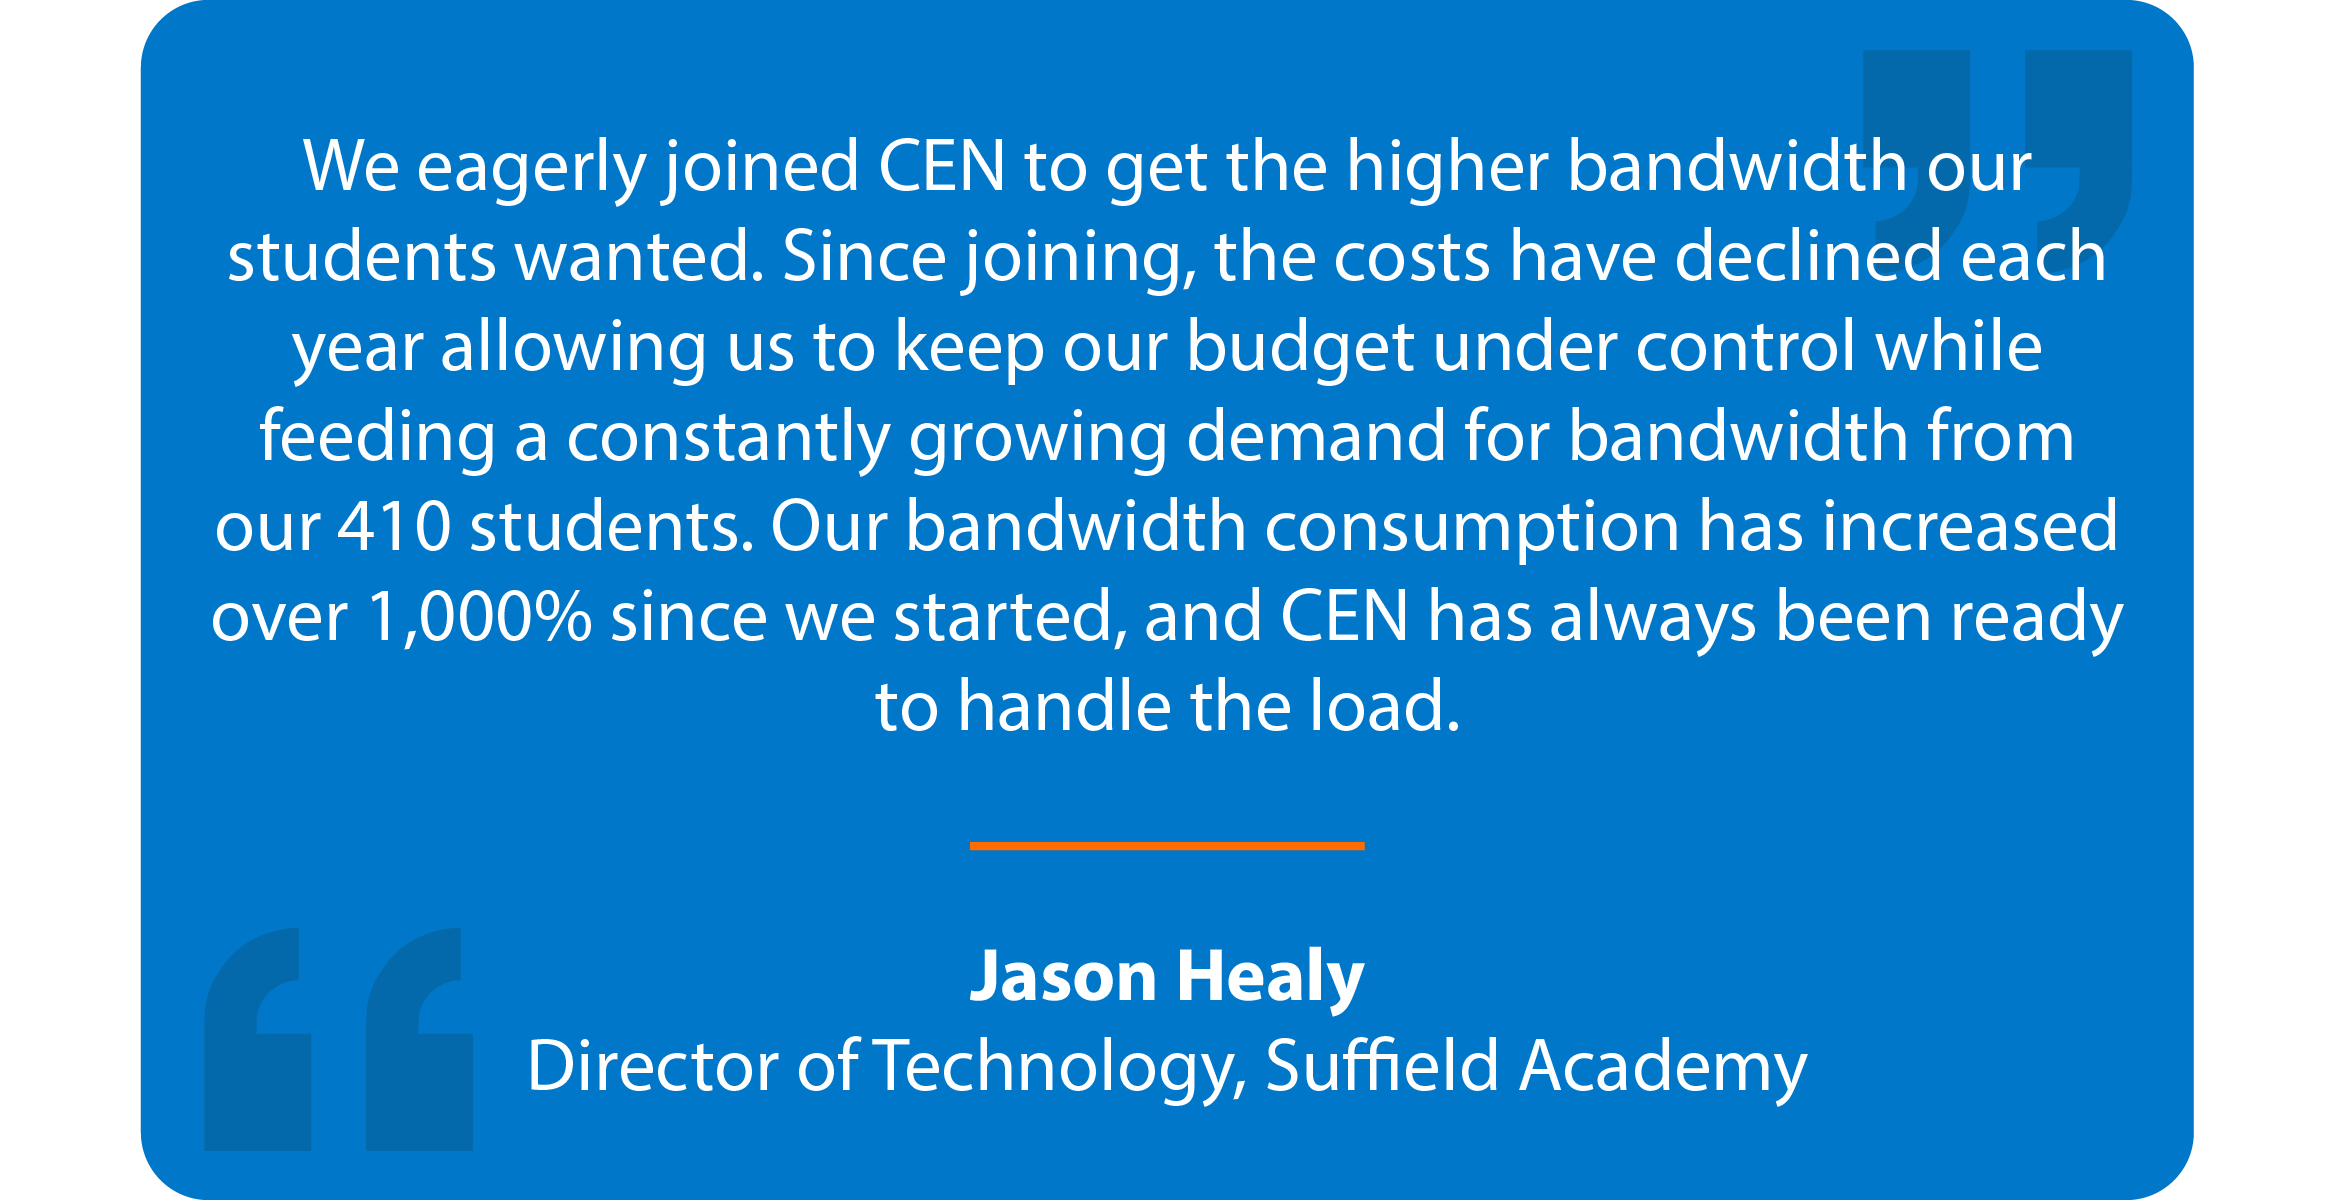 Blue box with quote that reads: We eagerly joined CEN to get the higher bandwidth our students wanted. Since joining, the costs have declined each year allowing us to keep our budget under control while feeding a constantly growing demand for bandwidth from our 410 students. Our bandwidth consumption has increased over 1,000% since we started, and CEN has always been ready to handle the load. Jason Healy Director of Technology, Suffield Academy